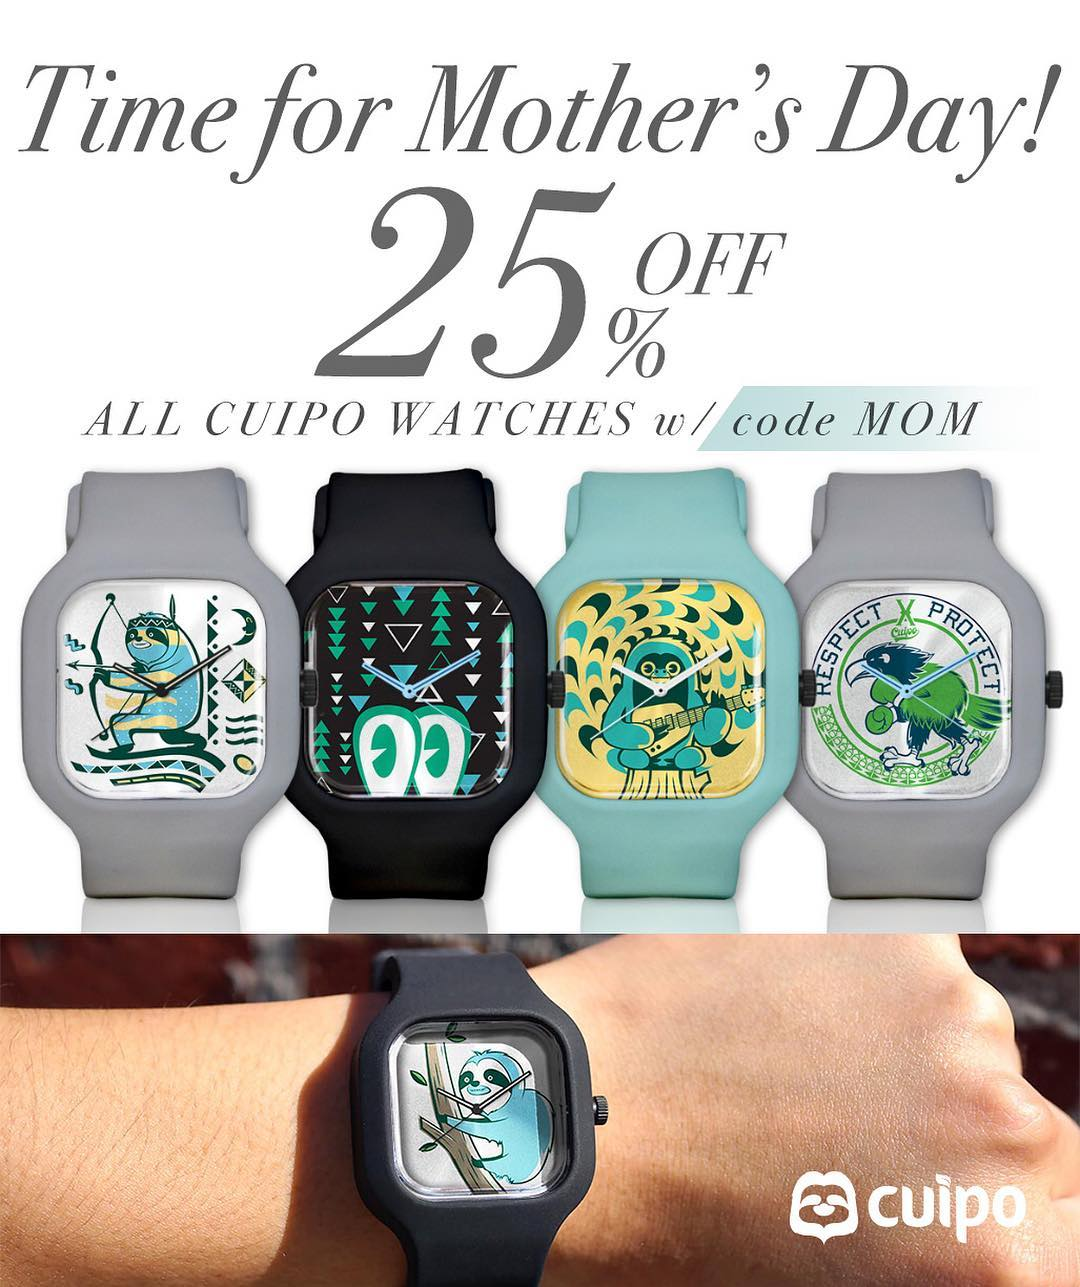 The clock is ticking to get Mom the perfect gift for #MothersDay! Shop now until TONIGHT at 11:59pm PST to get @ModifyWatches X #Cuipo for 25% off! Link to shop in bio. #SaveRainforest #ModifyWatches #GiftGuide #MothersDaySale #Mom